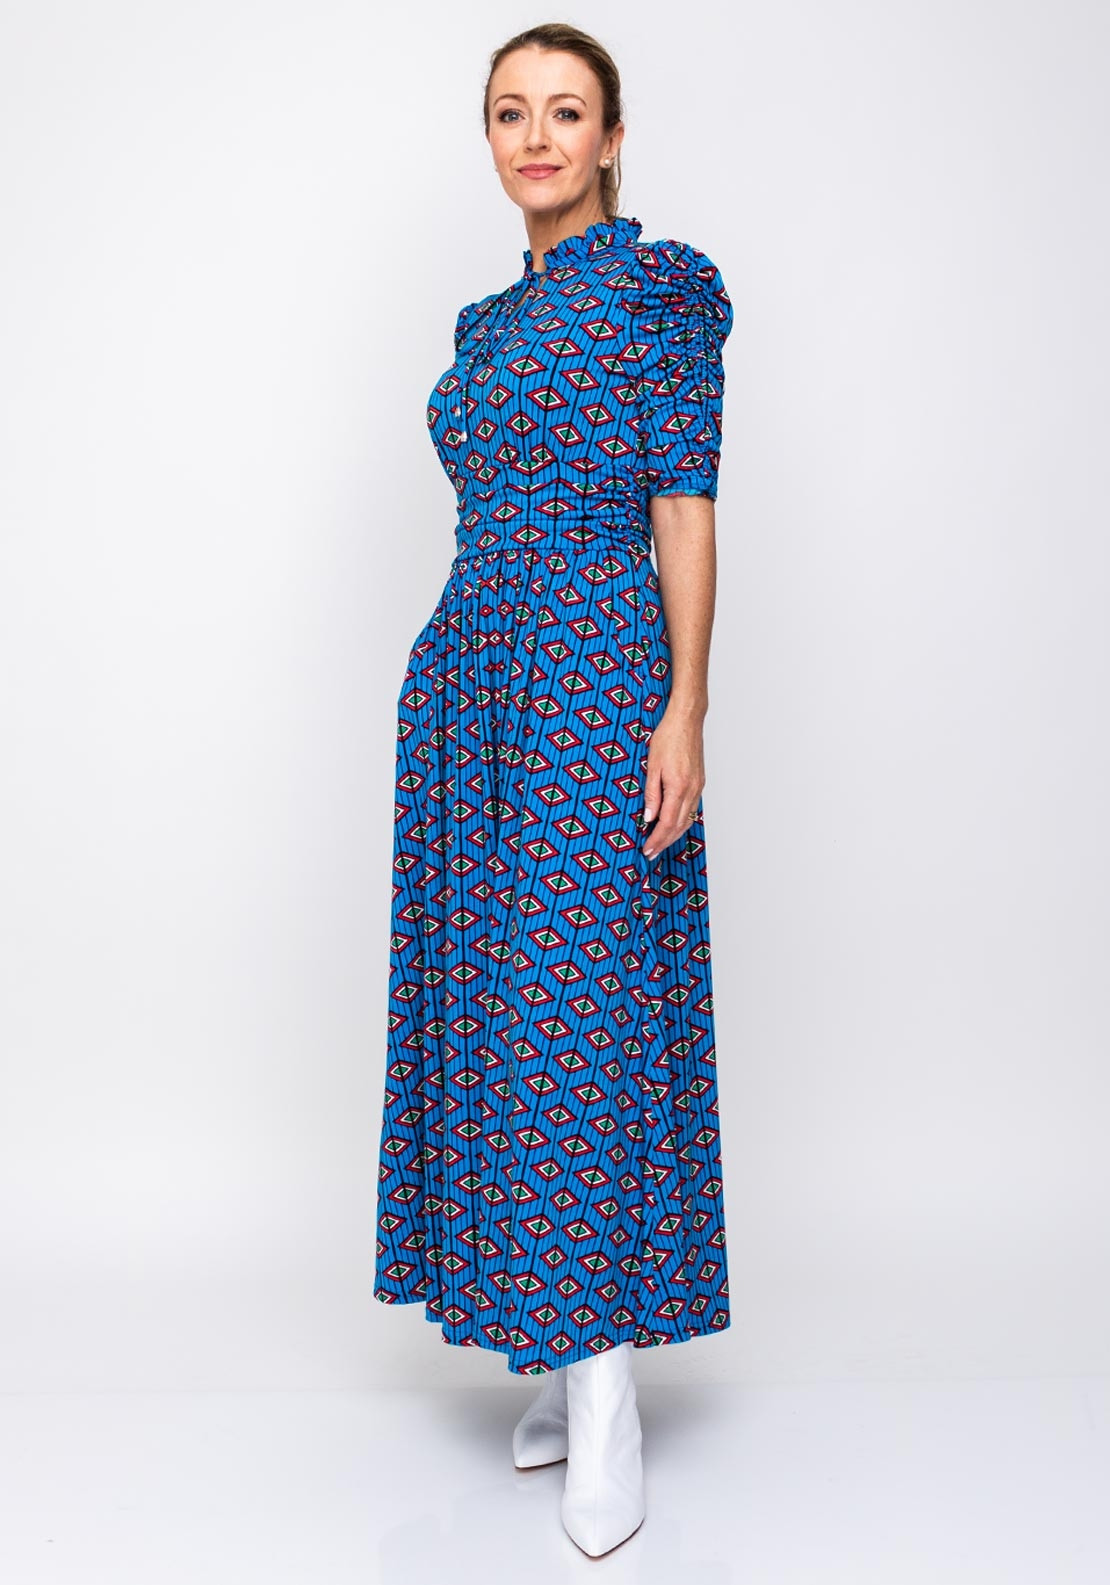 9f6045b042 Jolie Moi Printed Tie Collar Maxi Dress, Blue. Be the first to review this  product